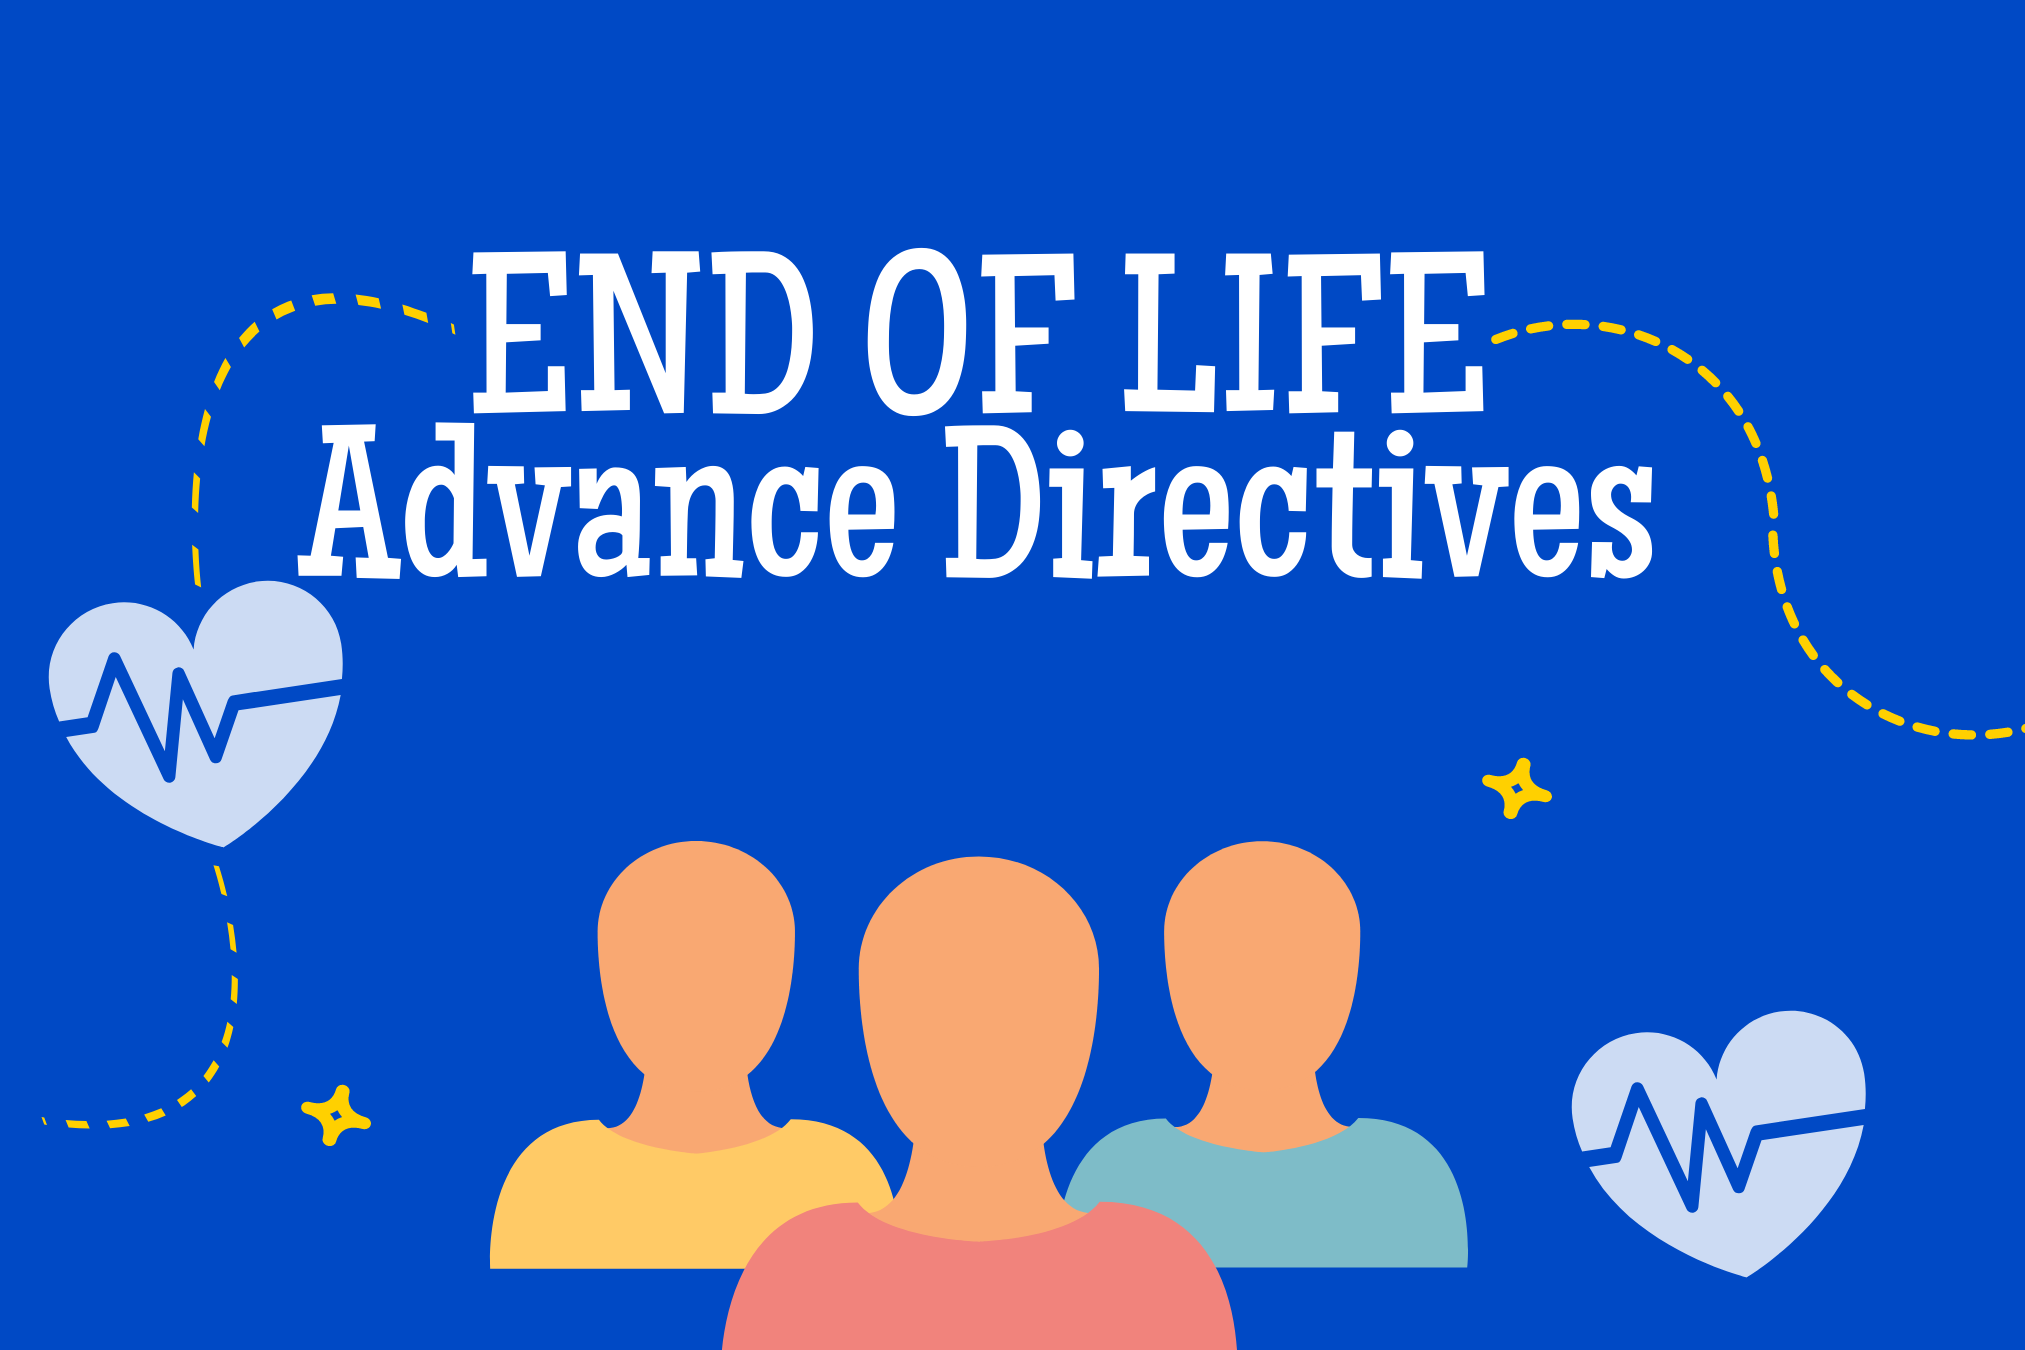 End of Life Advance Directives